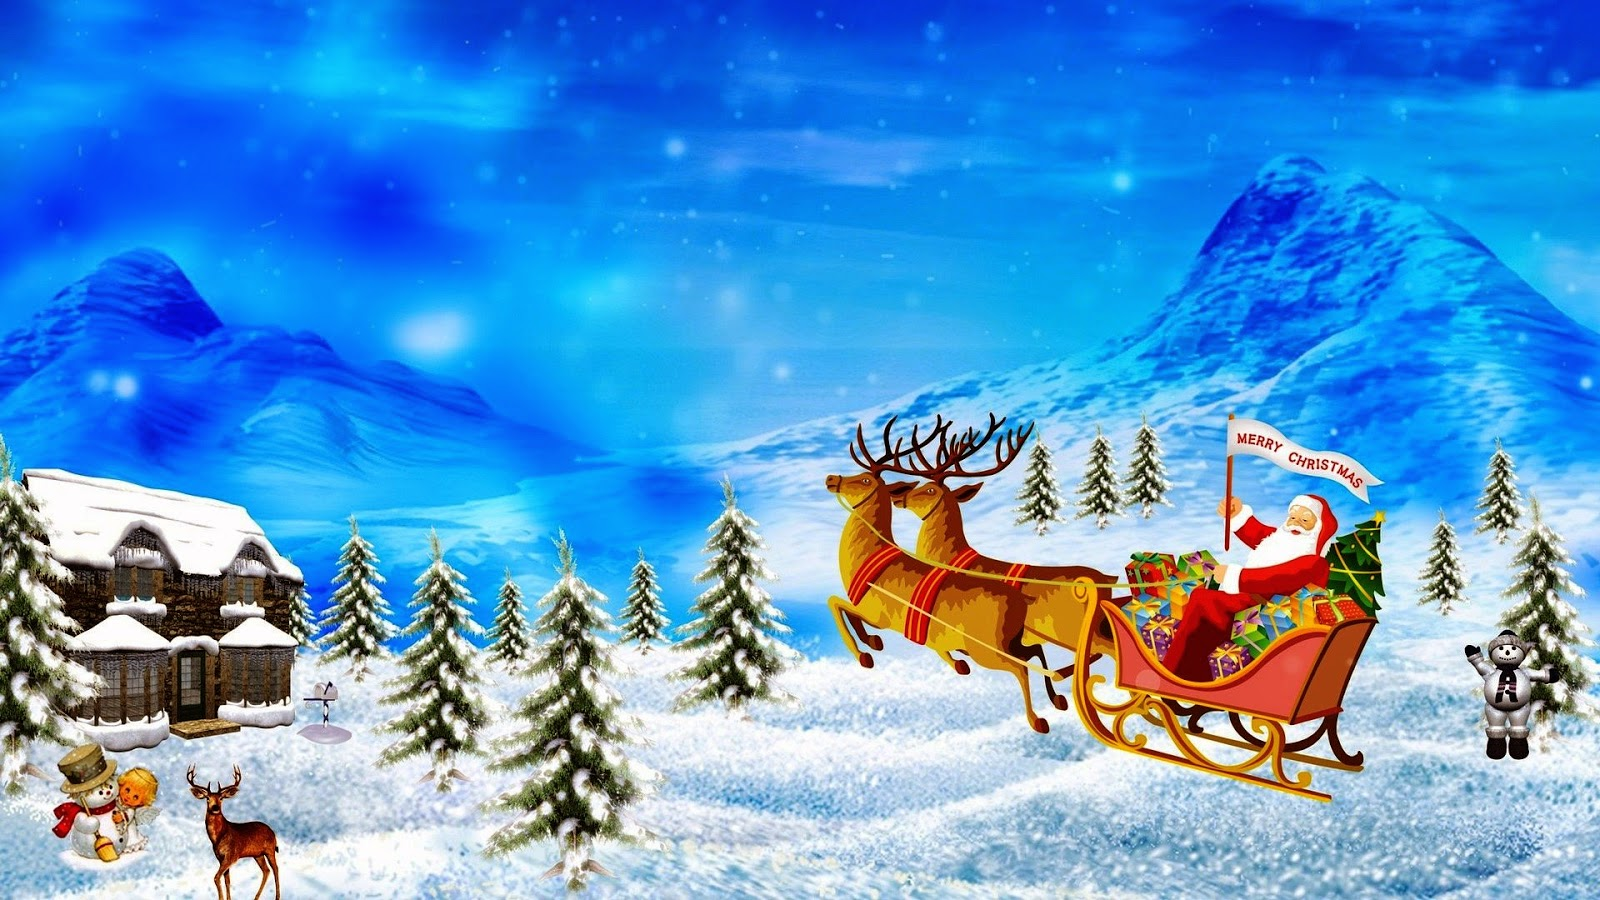 merry christmas wallpapers,songs,sms,quotes etc.: merry christmas